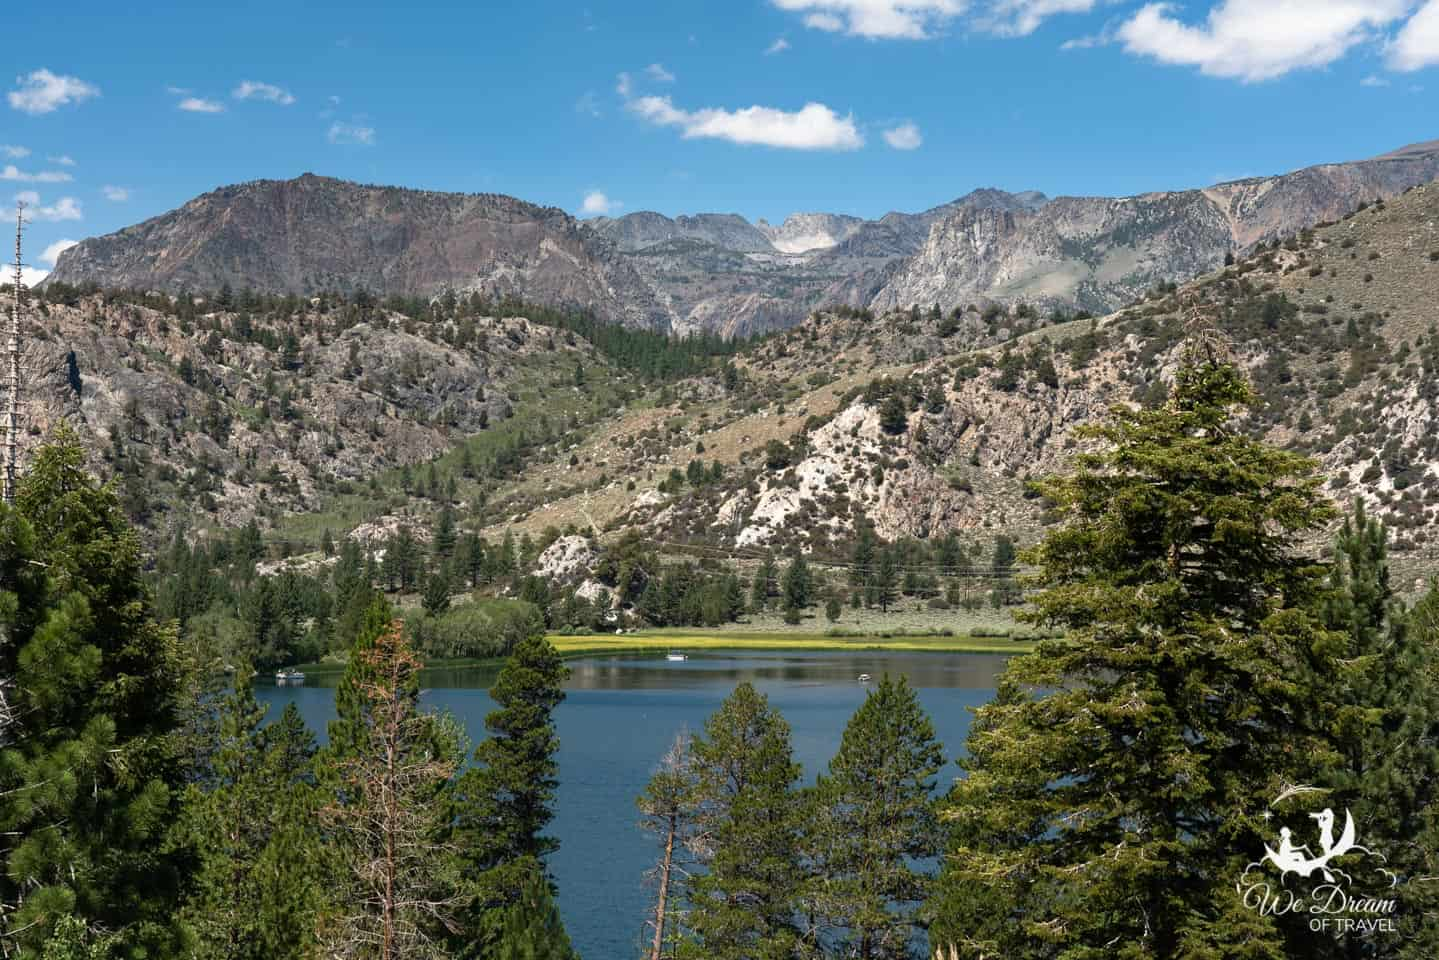 Gull Lake and breathtaking views of mountainside lagoons on the June Lakes Loop drive.